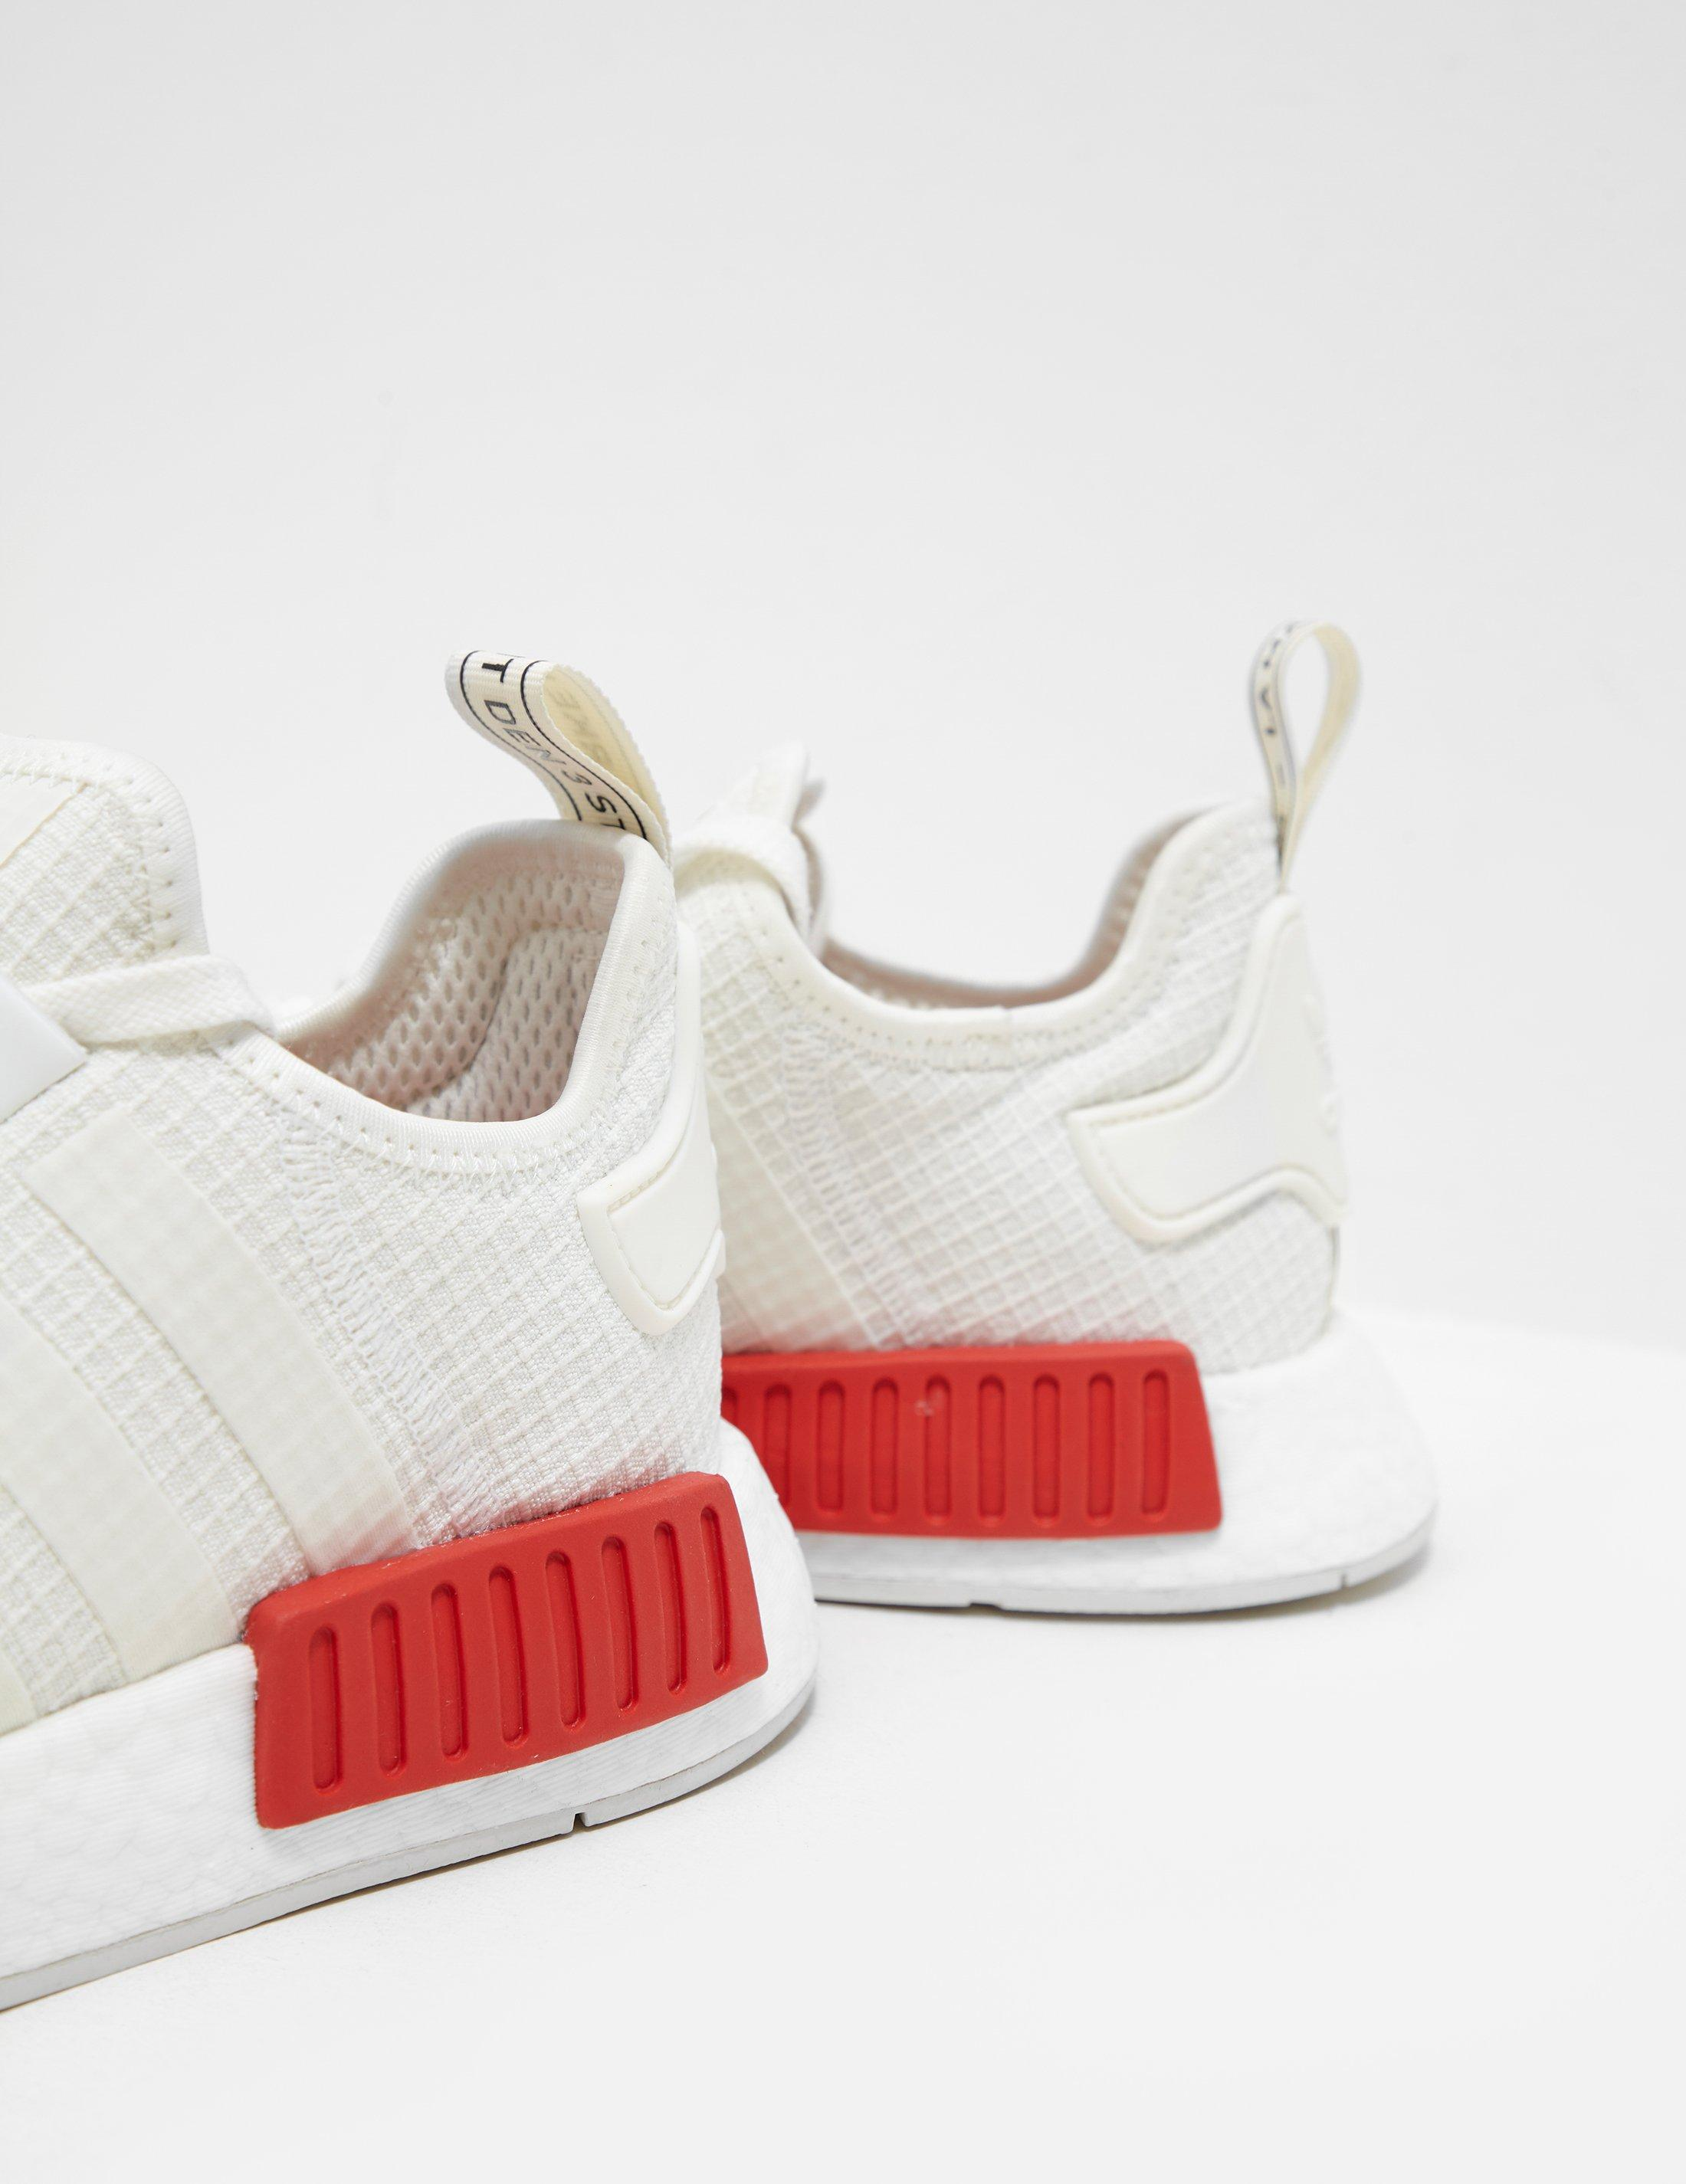 Adidas Originals - Nmd R1 Ripstop White for Men - Lyst. View fullscreen 2d2560abe